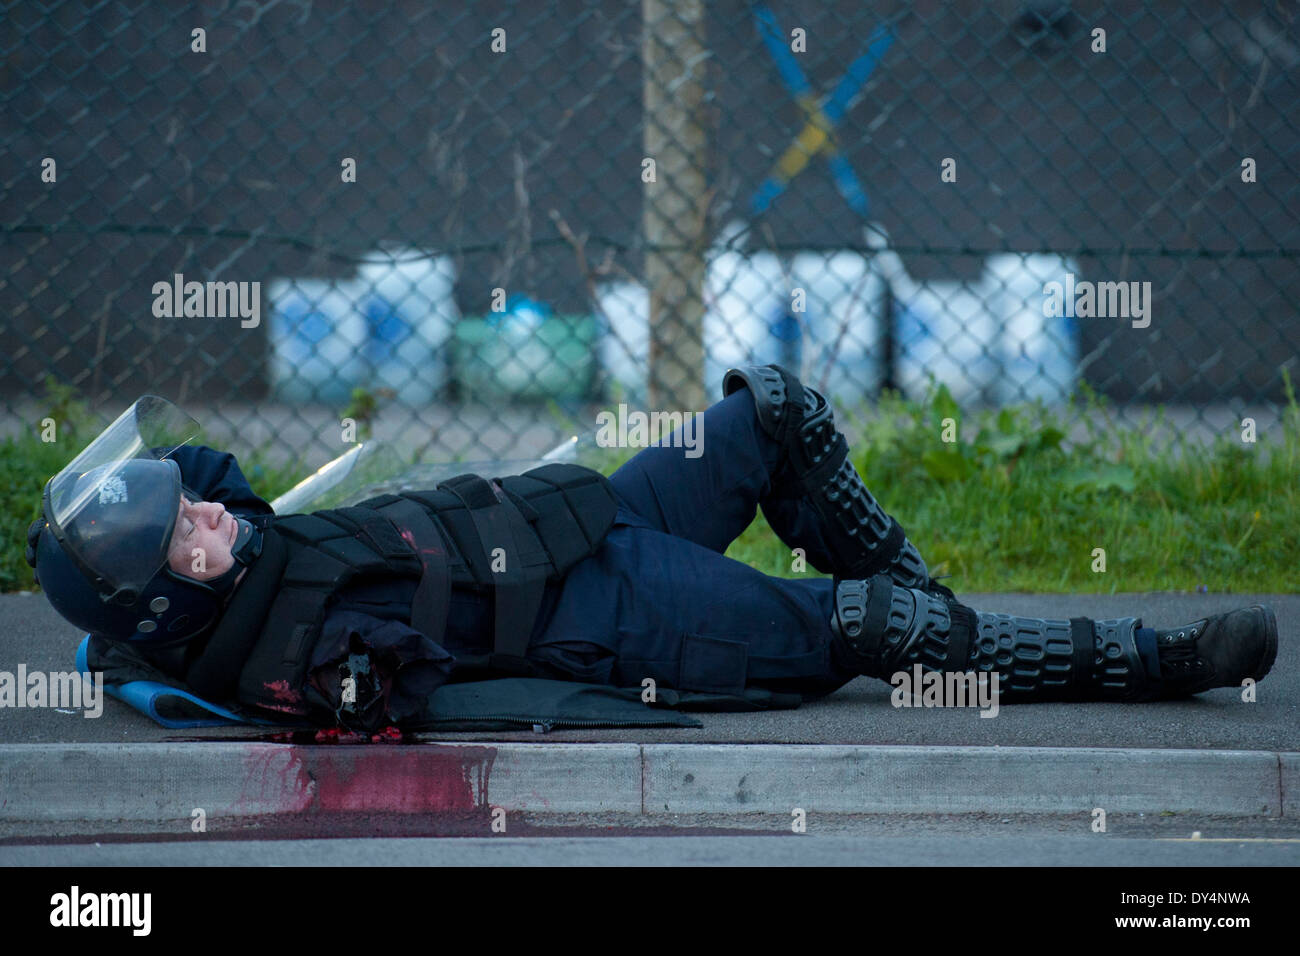 An injured riot police officer. - Stock Image